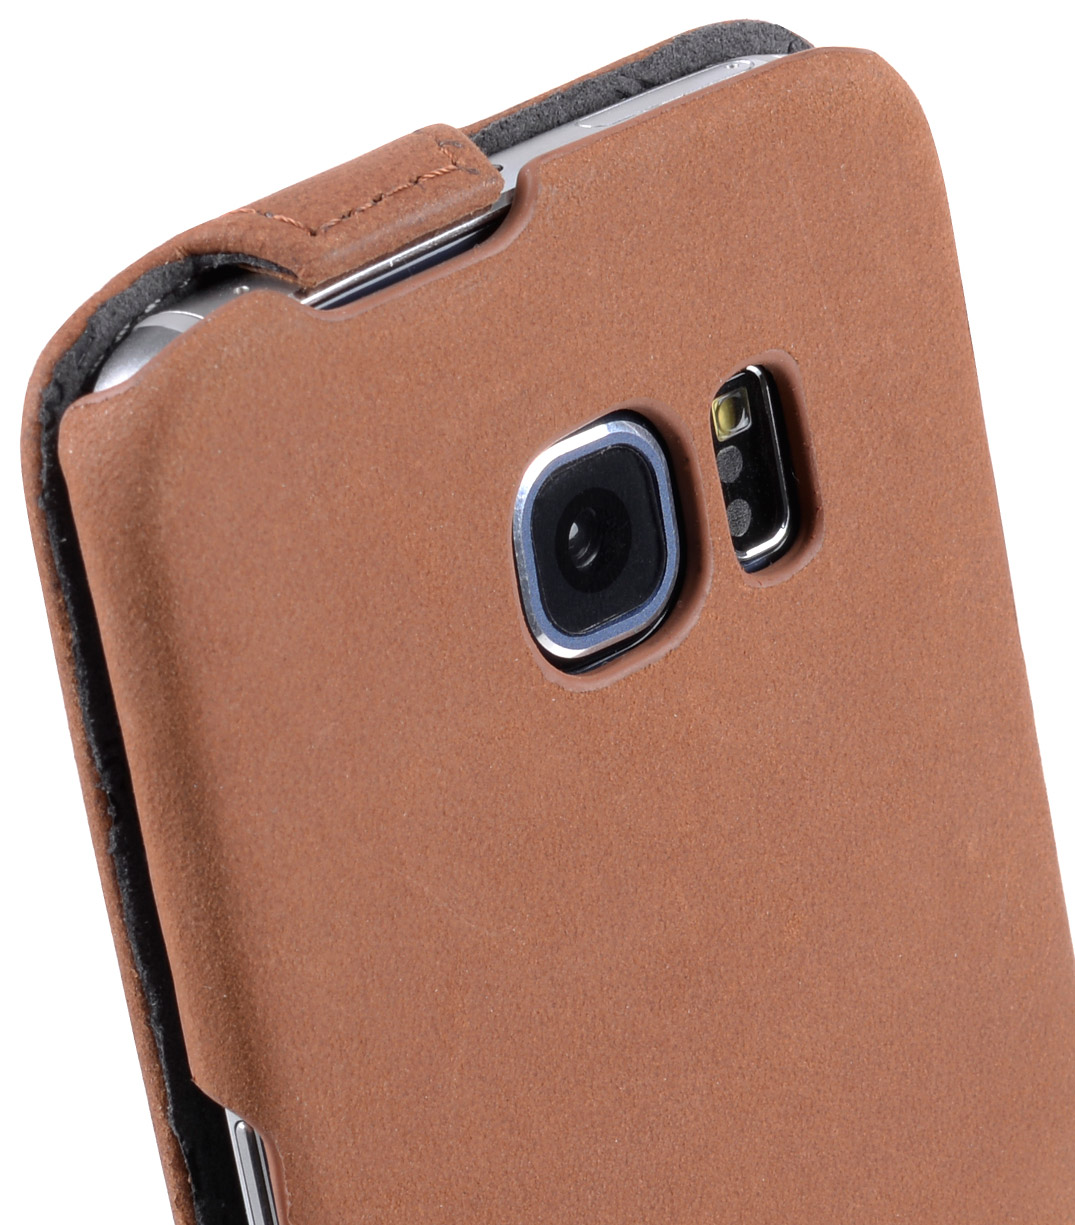 Melkco Premium Leather Cases for Samsung Galaxy S6 Edge - Jacka Type (Classic Vintage Brown)